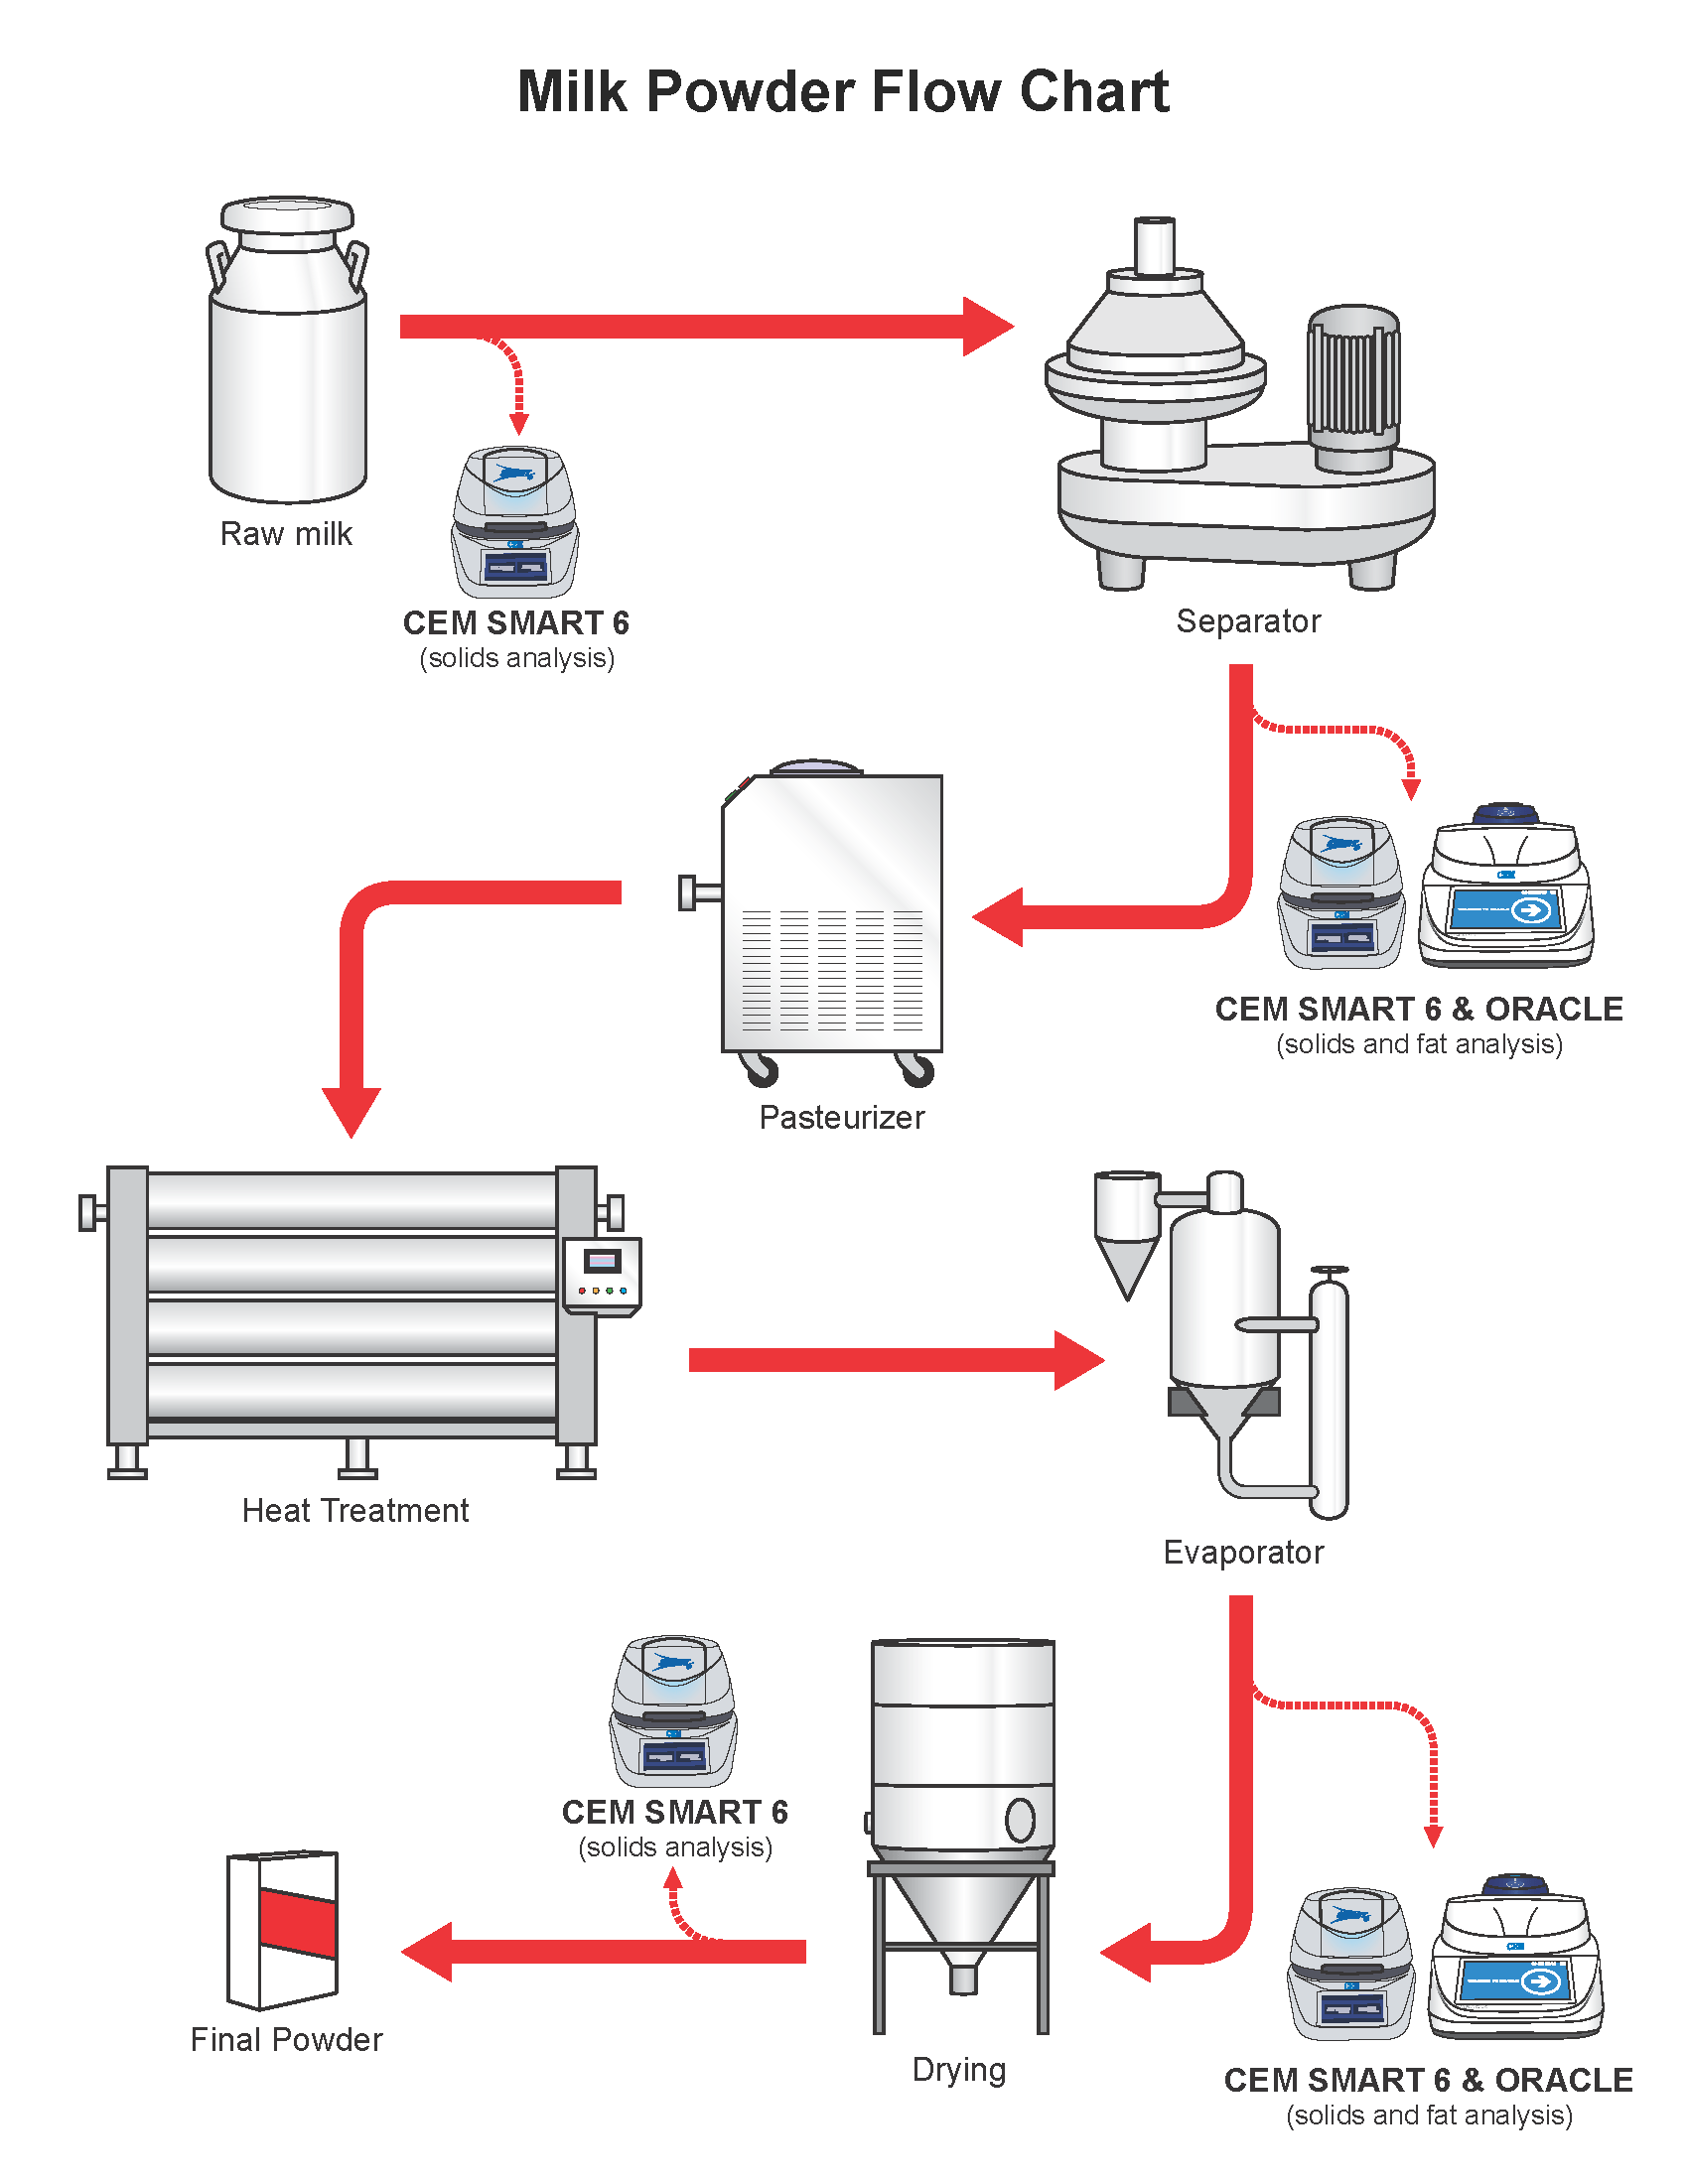 hight resolution of the milk powder flow chart gives precise details on the production process of milk powder as well as an explanation of where cem process products can be